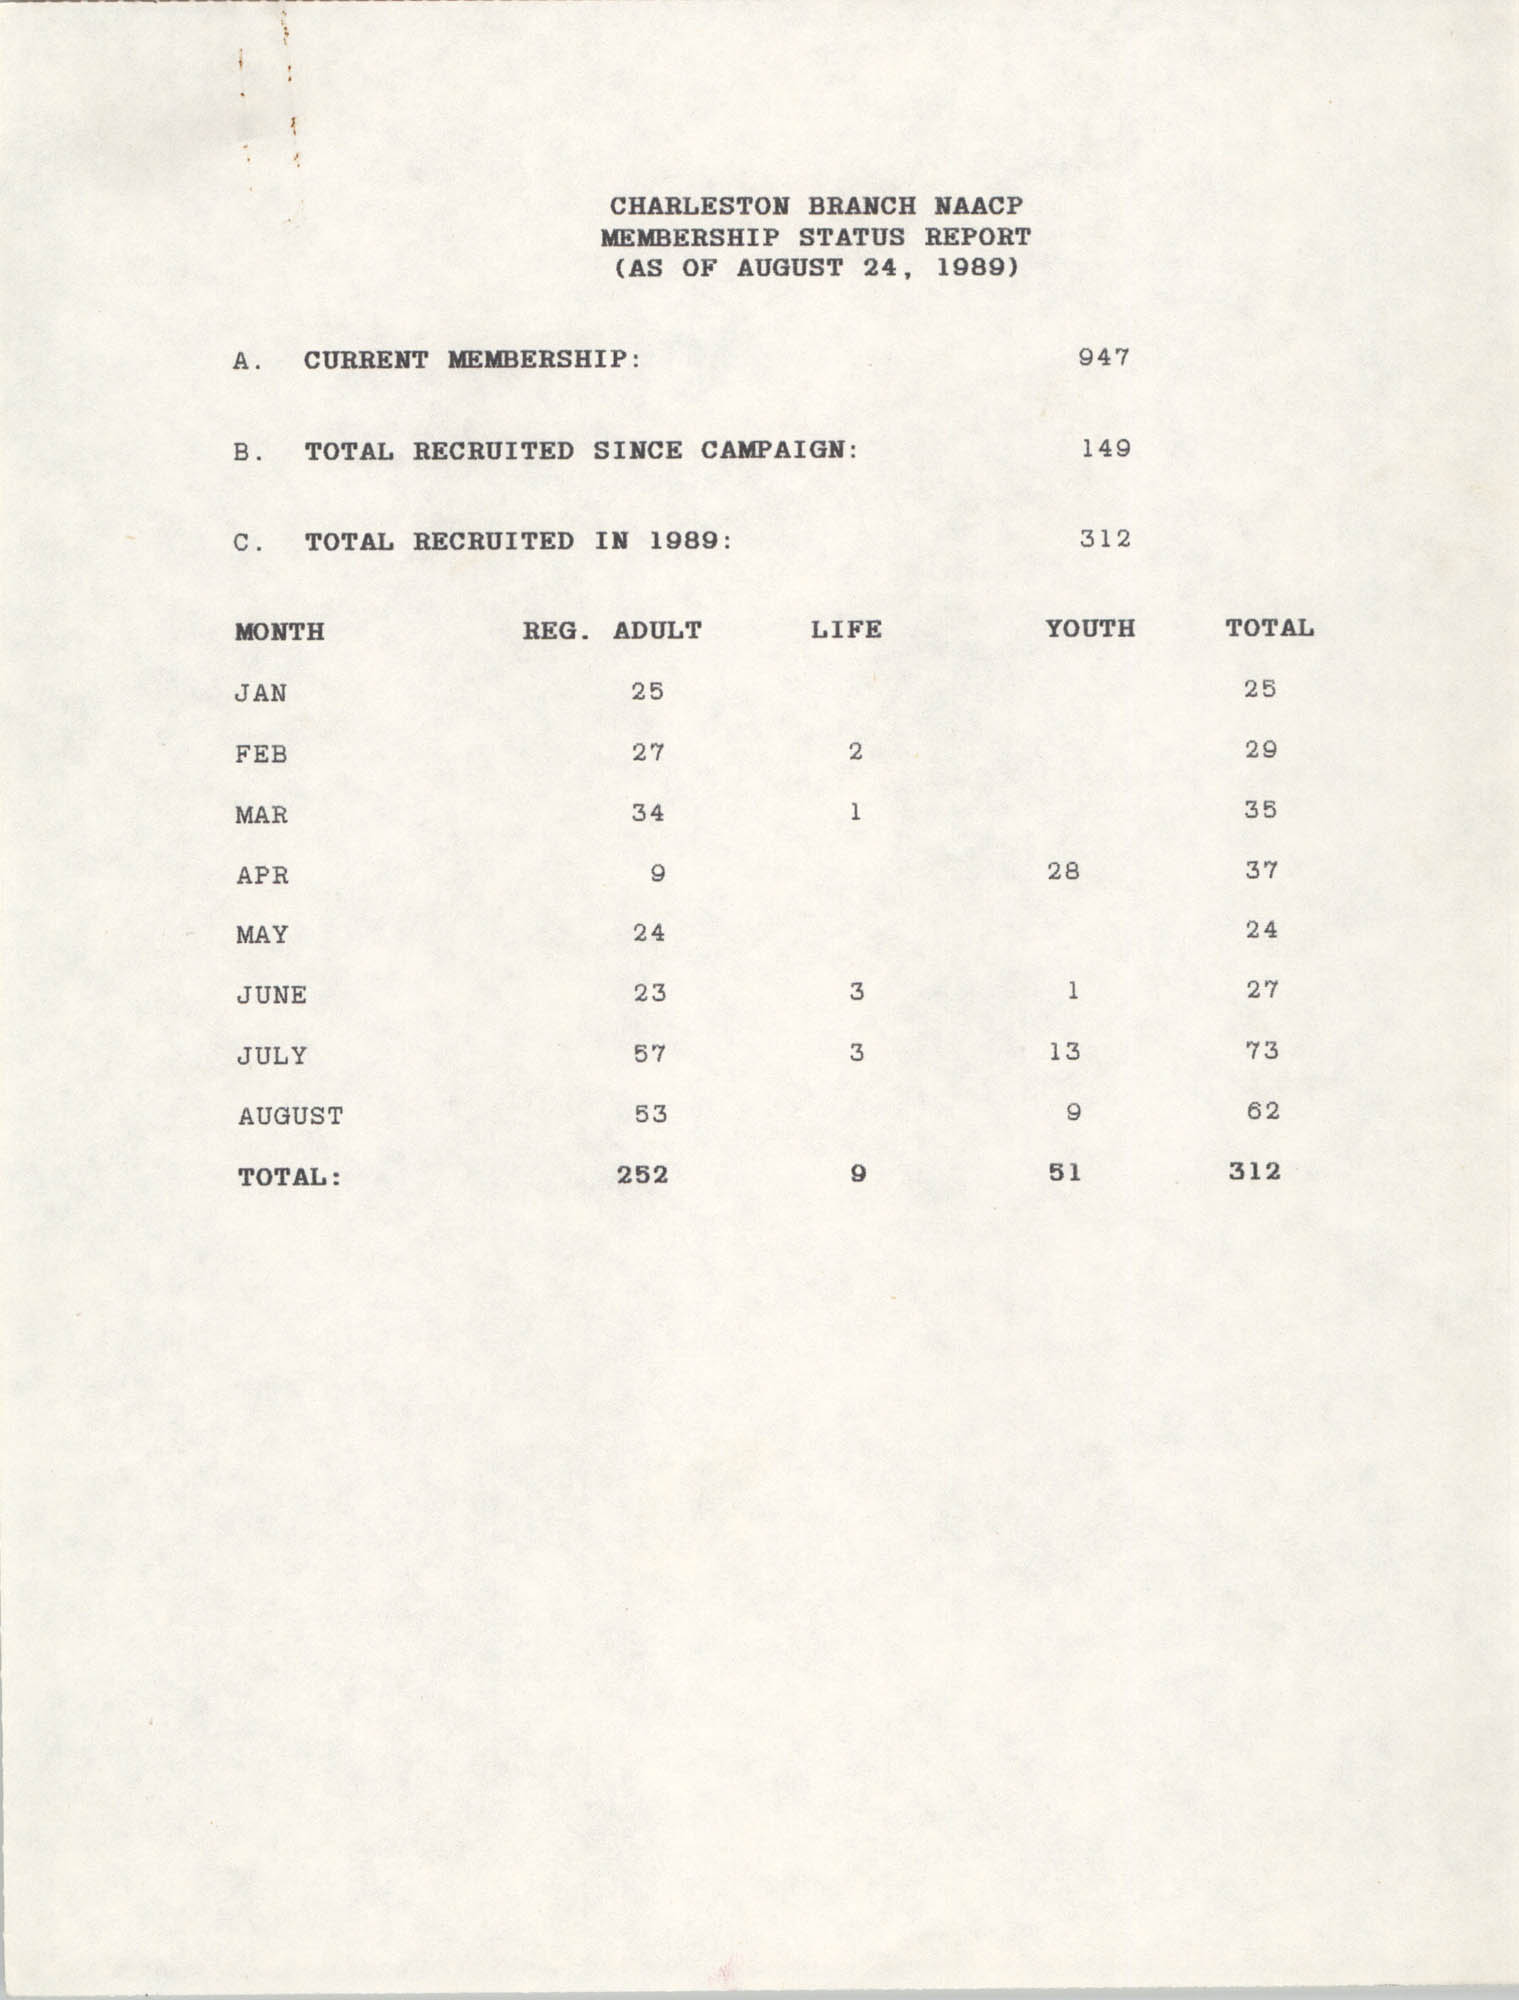 Membership Status Report, National Association for the Advancement of Colored People, August 24, 1989